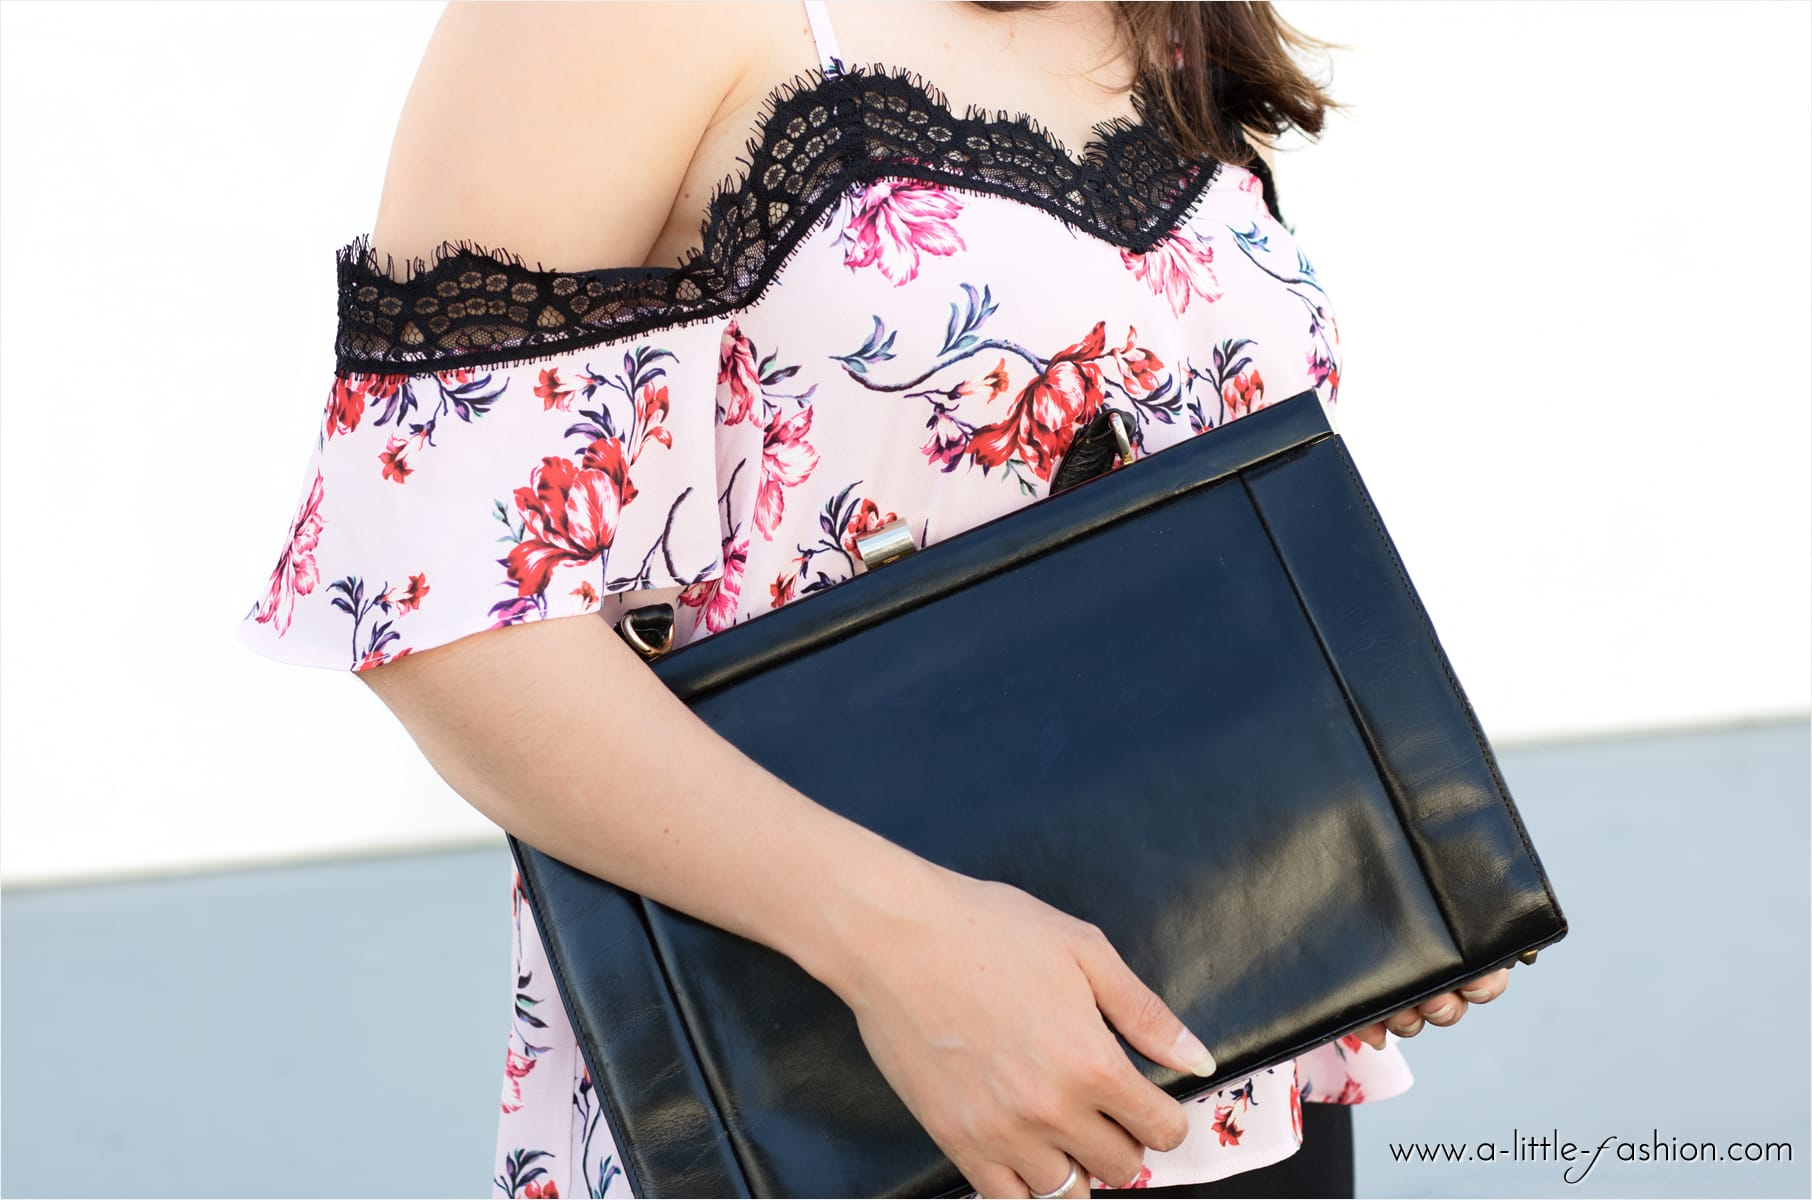 Outfit im Lingerie-Look mit Offshoulder-Blumentop und Palazzo-Hose | A Little Fashion